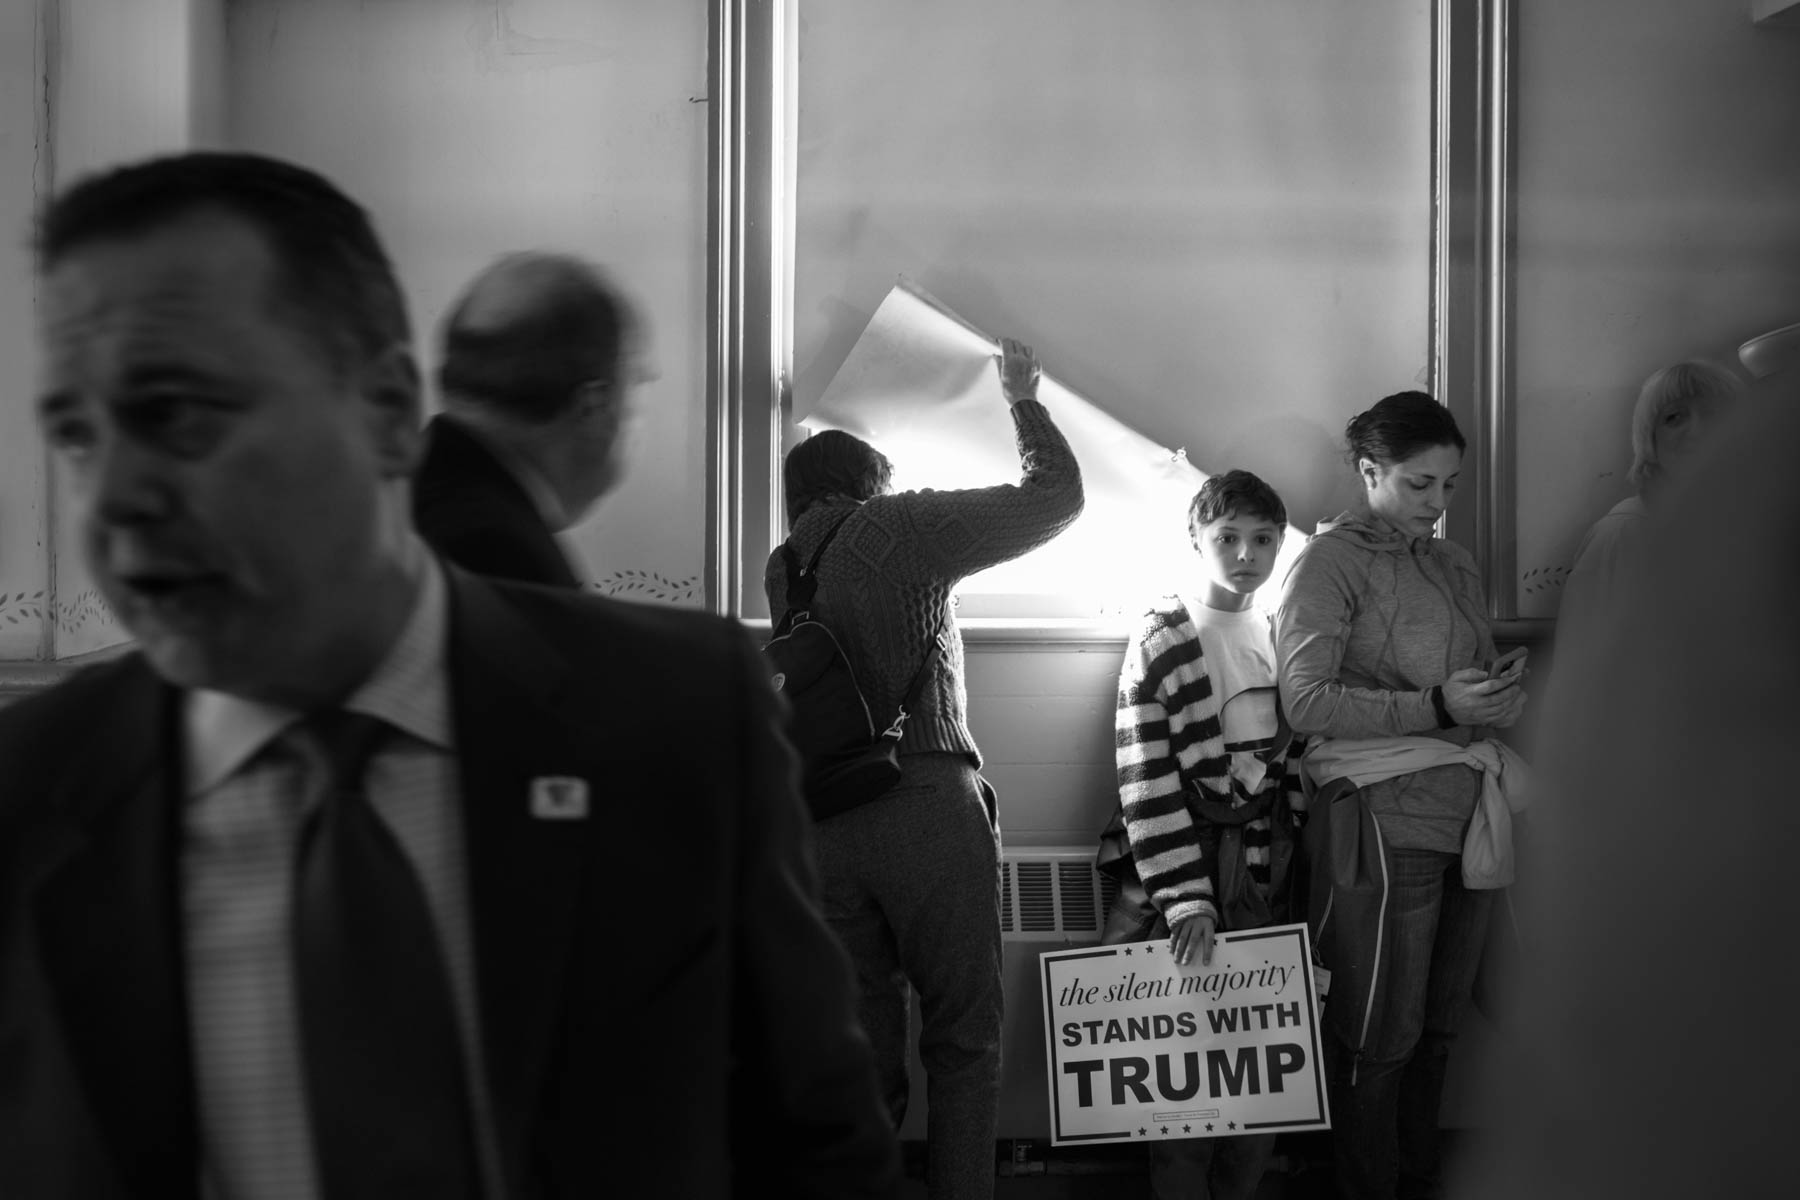 04 Feb 2016 - Exeter, New Hampshire - Supporters are waiting for Republican presidential candidate Donald J. Trump to arrive for a speech in Exeter Town Hall.